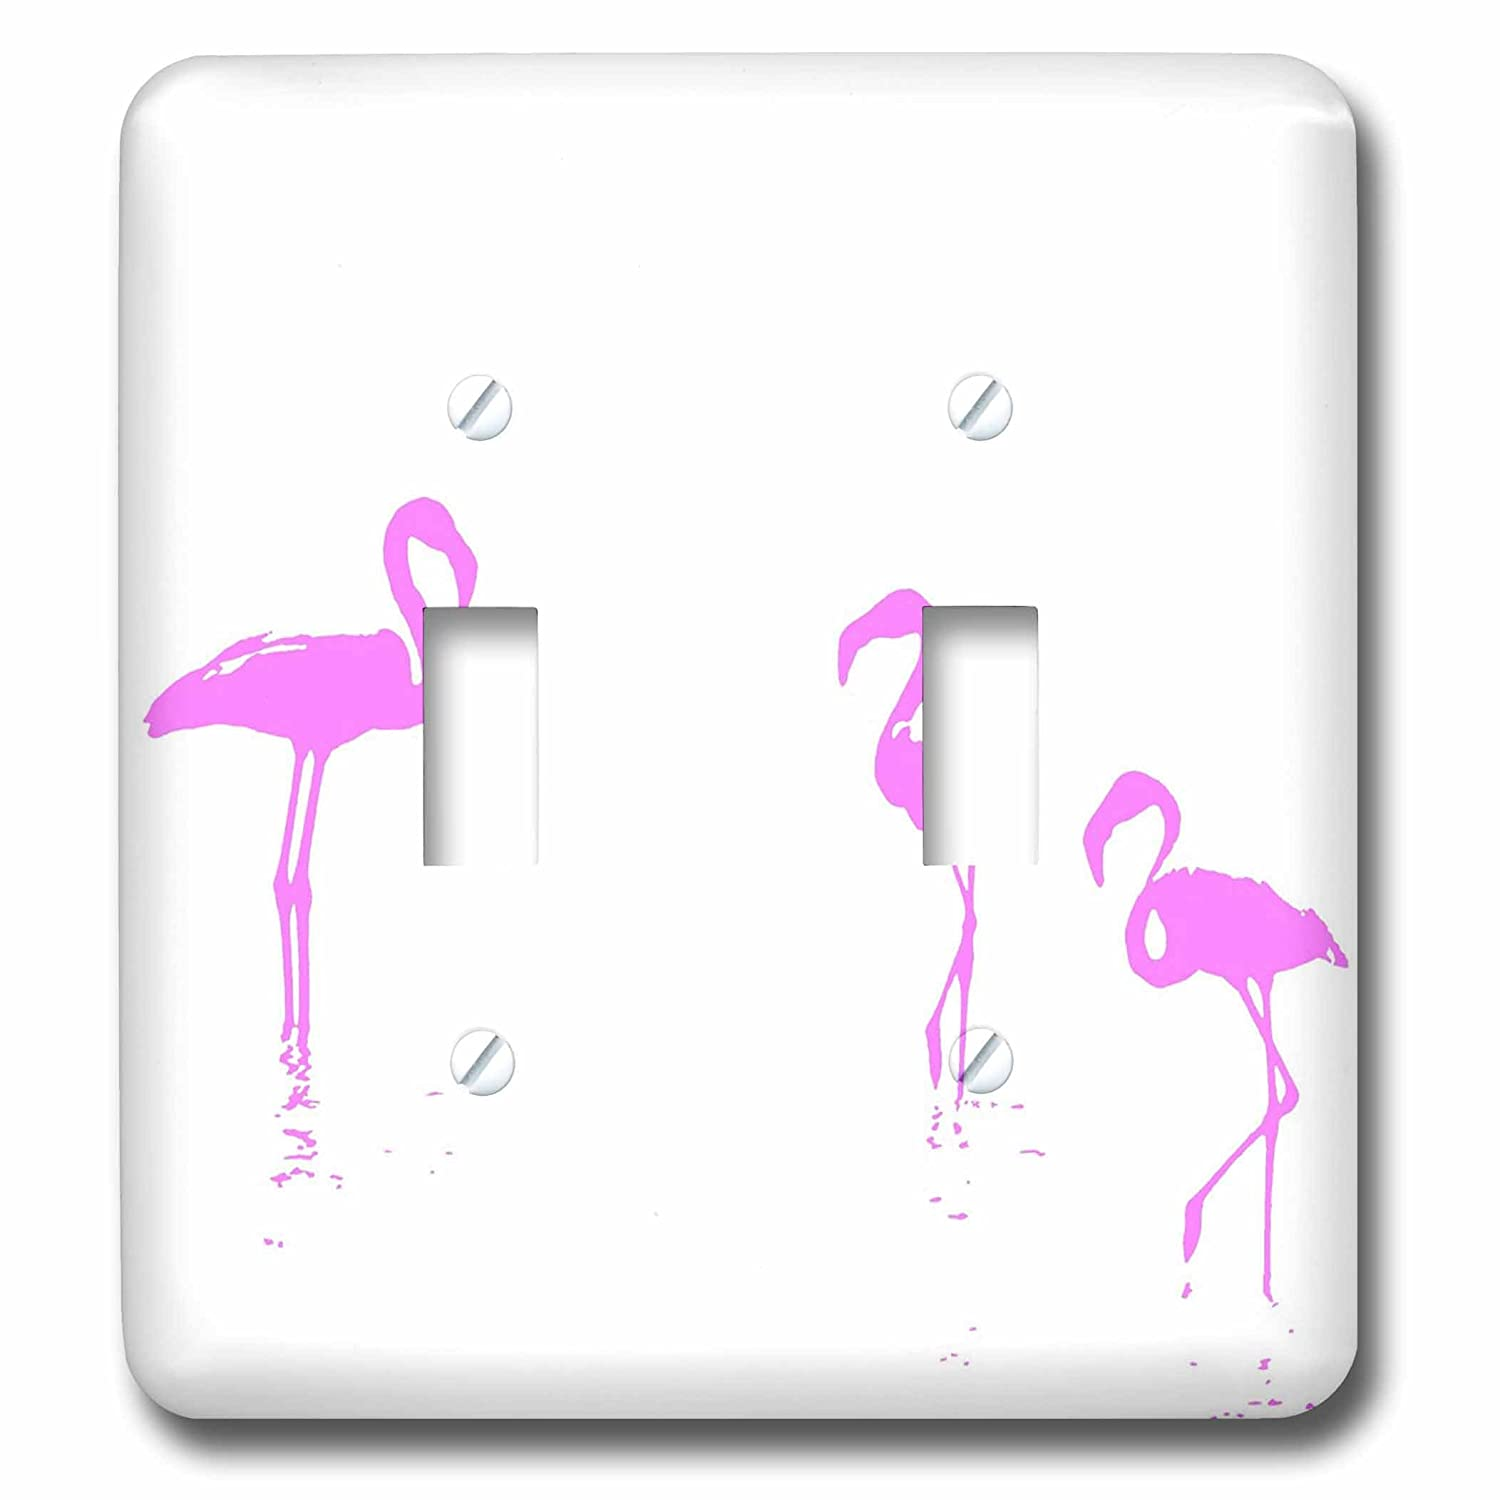 3dローズTaiche – ベクトル – フラミンゴ – We Are the Three Flamingoesシルエットinピンク – 照明スイッチカバー – ダブルトグルスイッチ(LSP 275654 _ 2 ) B07BFH4PSW